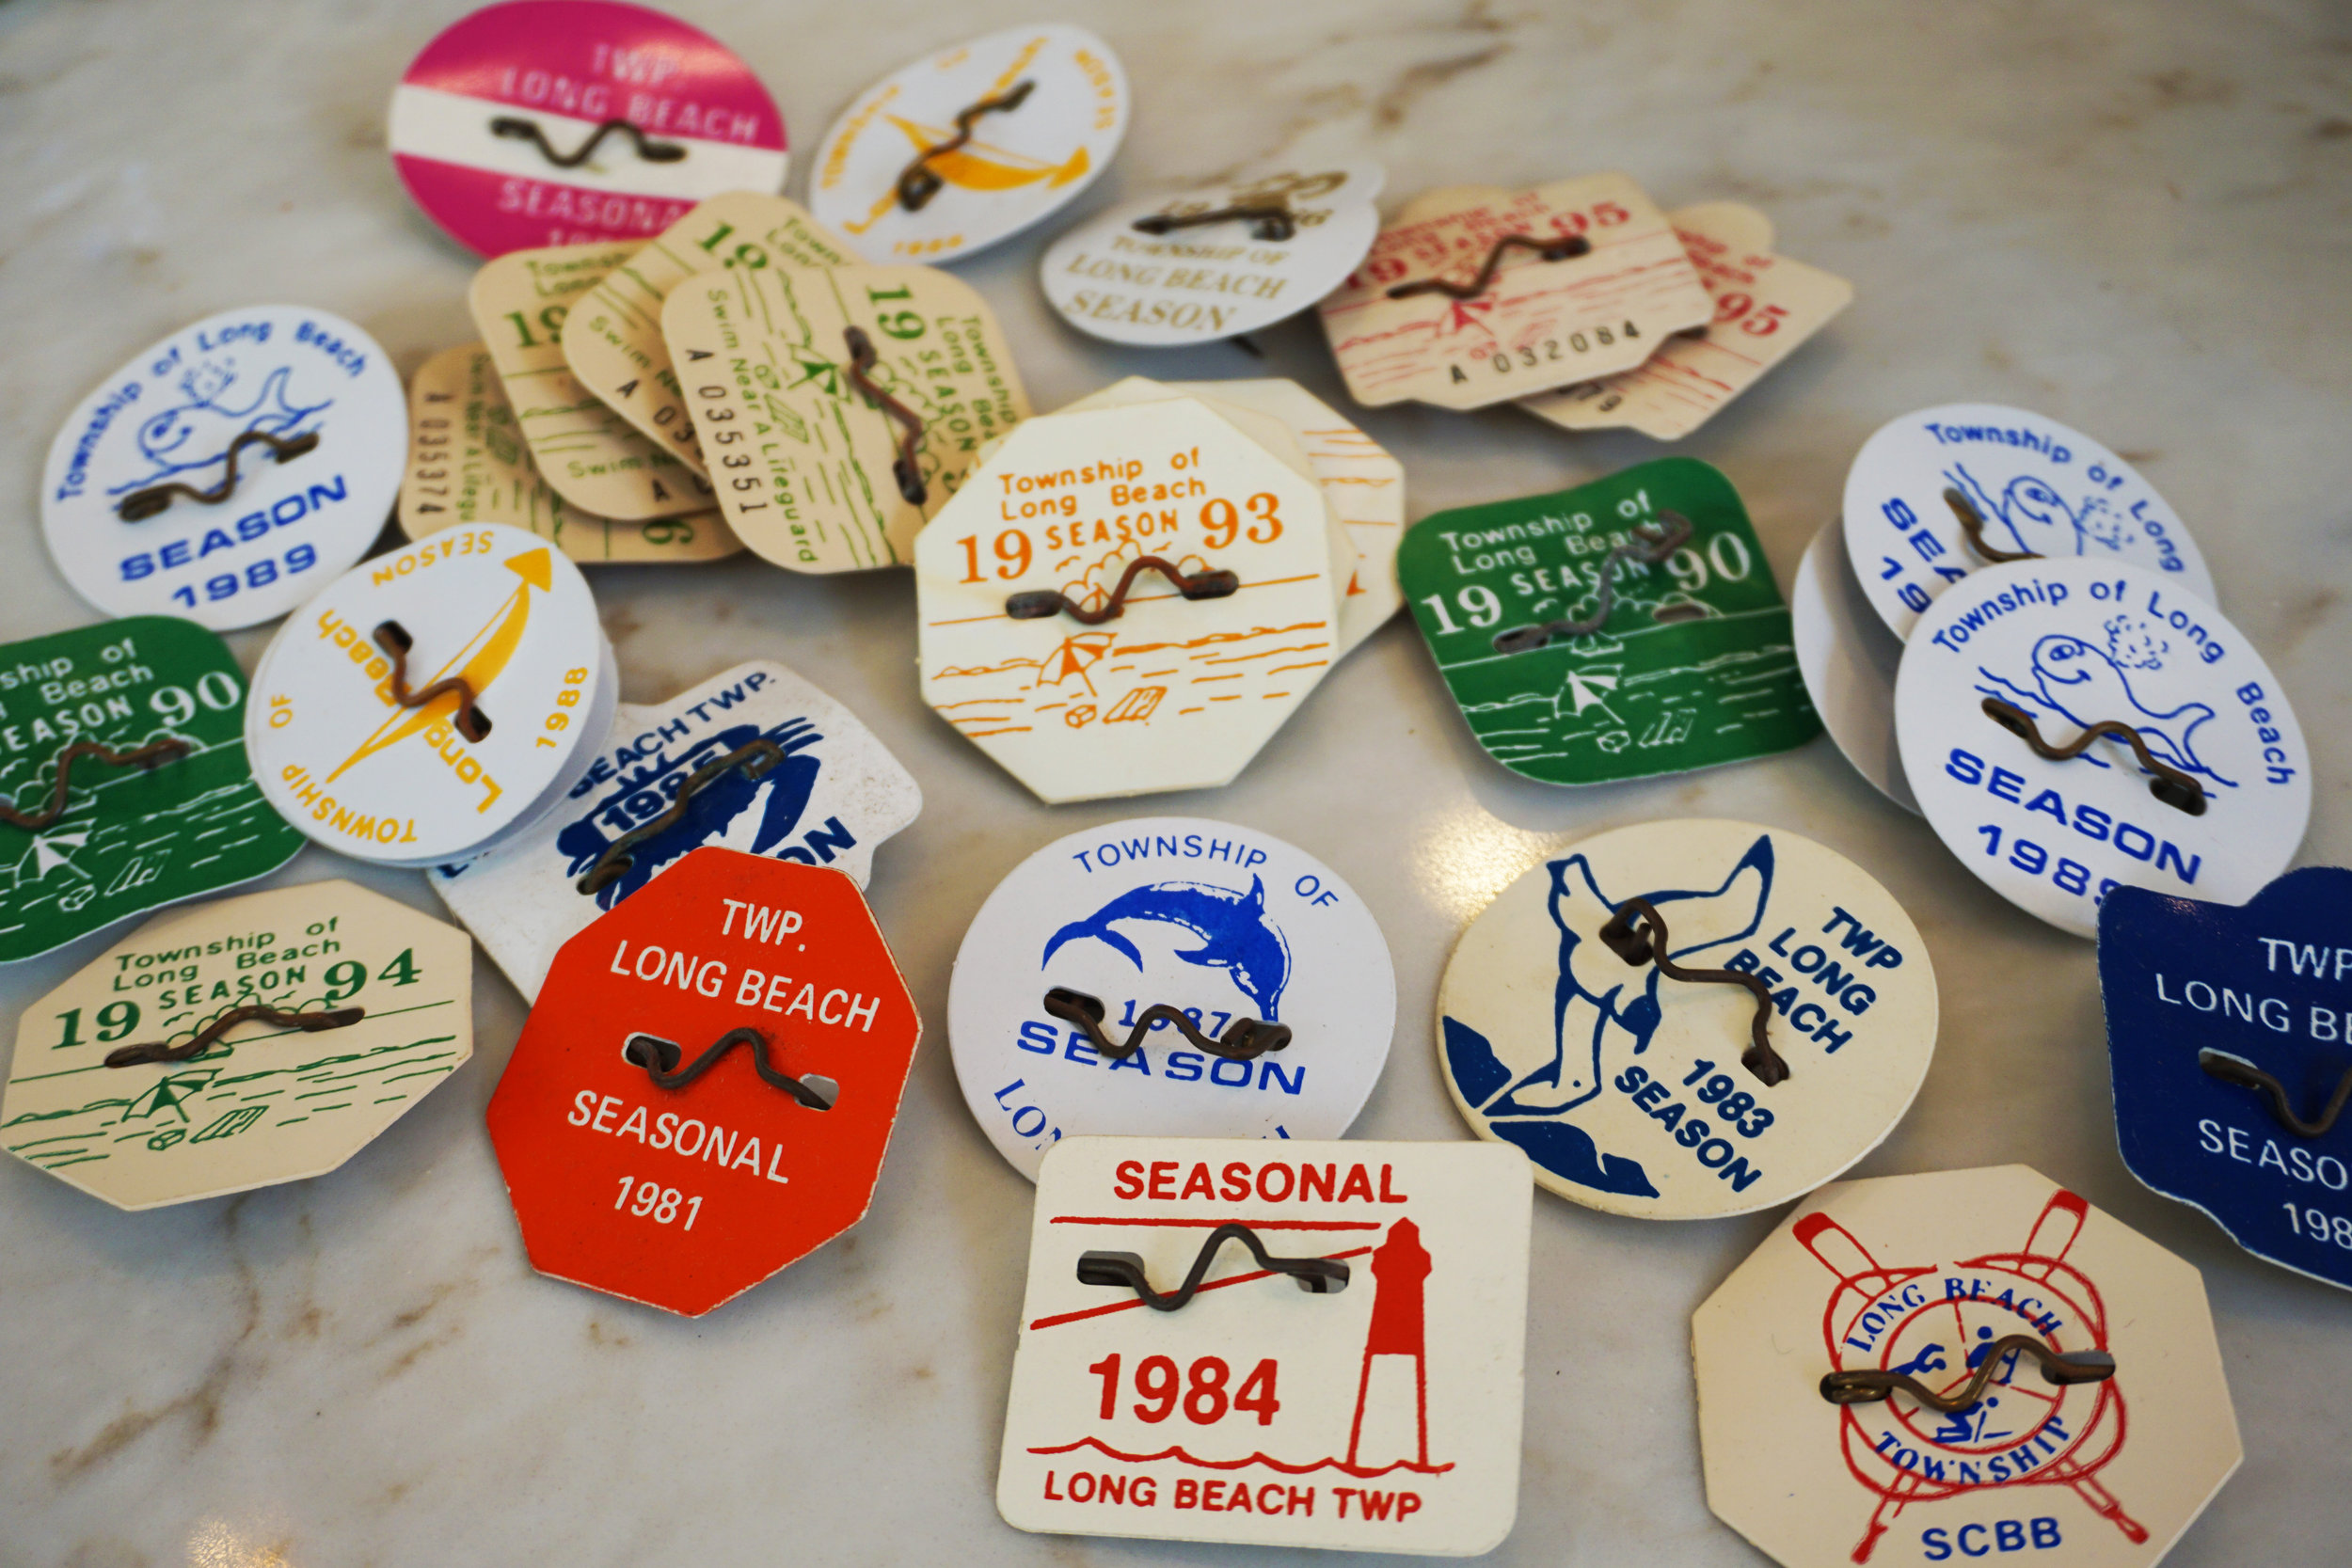 Seasonal entrance pins to the beach